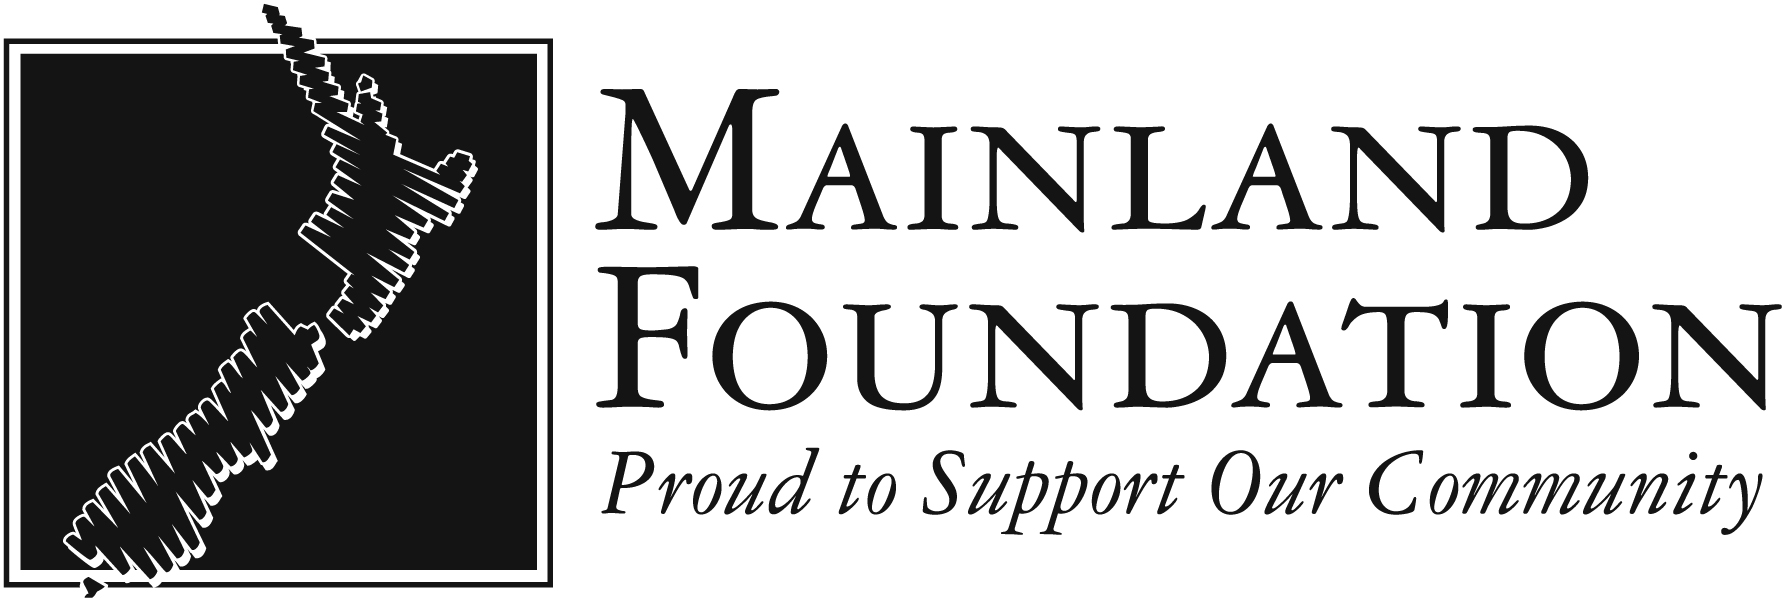 Mainland Foundation logo.jpg